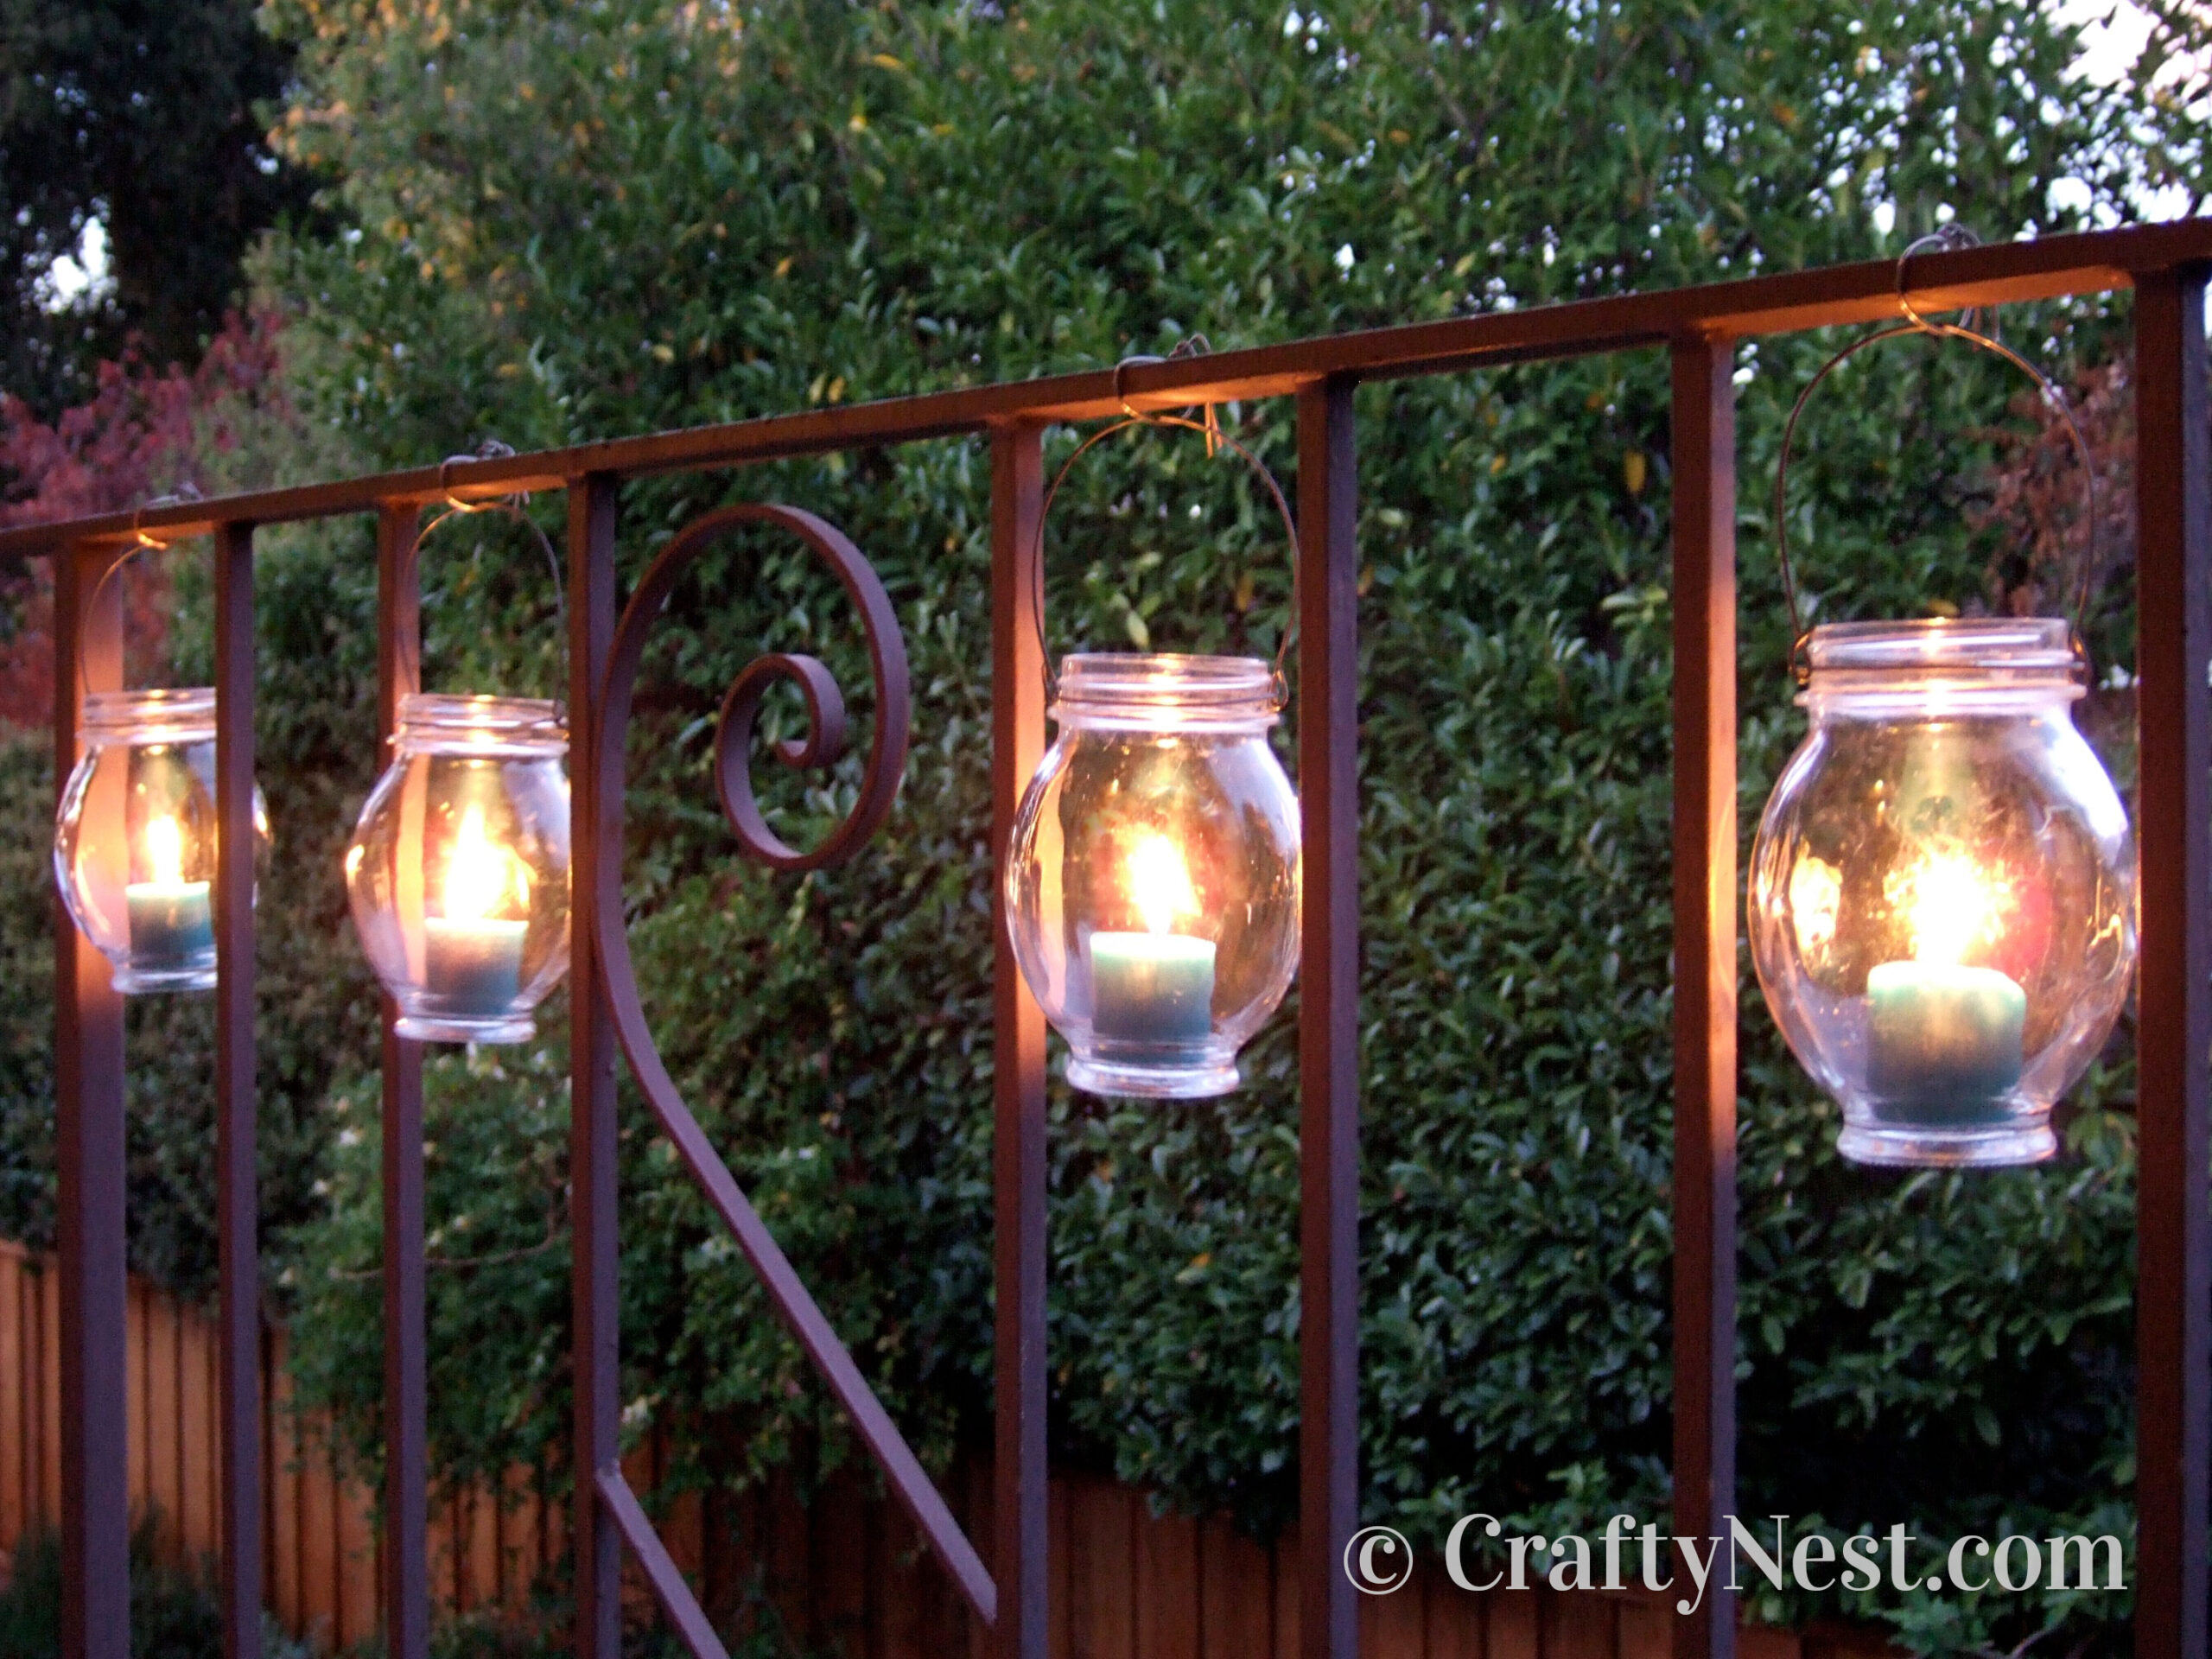 Jars with candles hanging from wire attached to a railing, photo